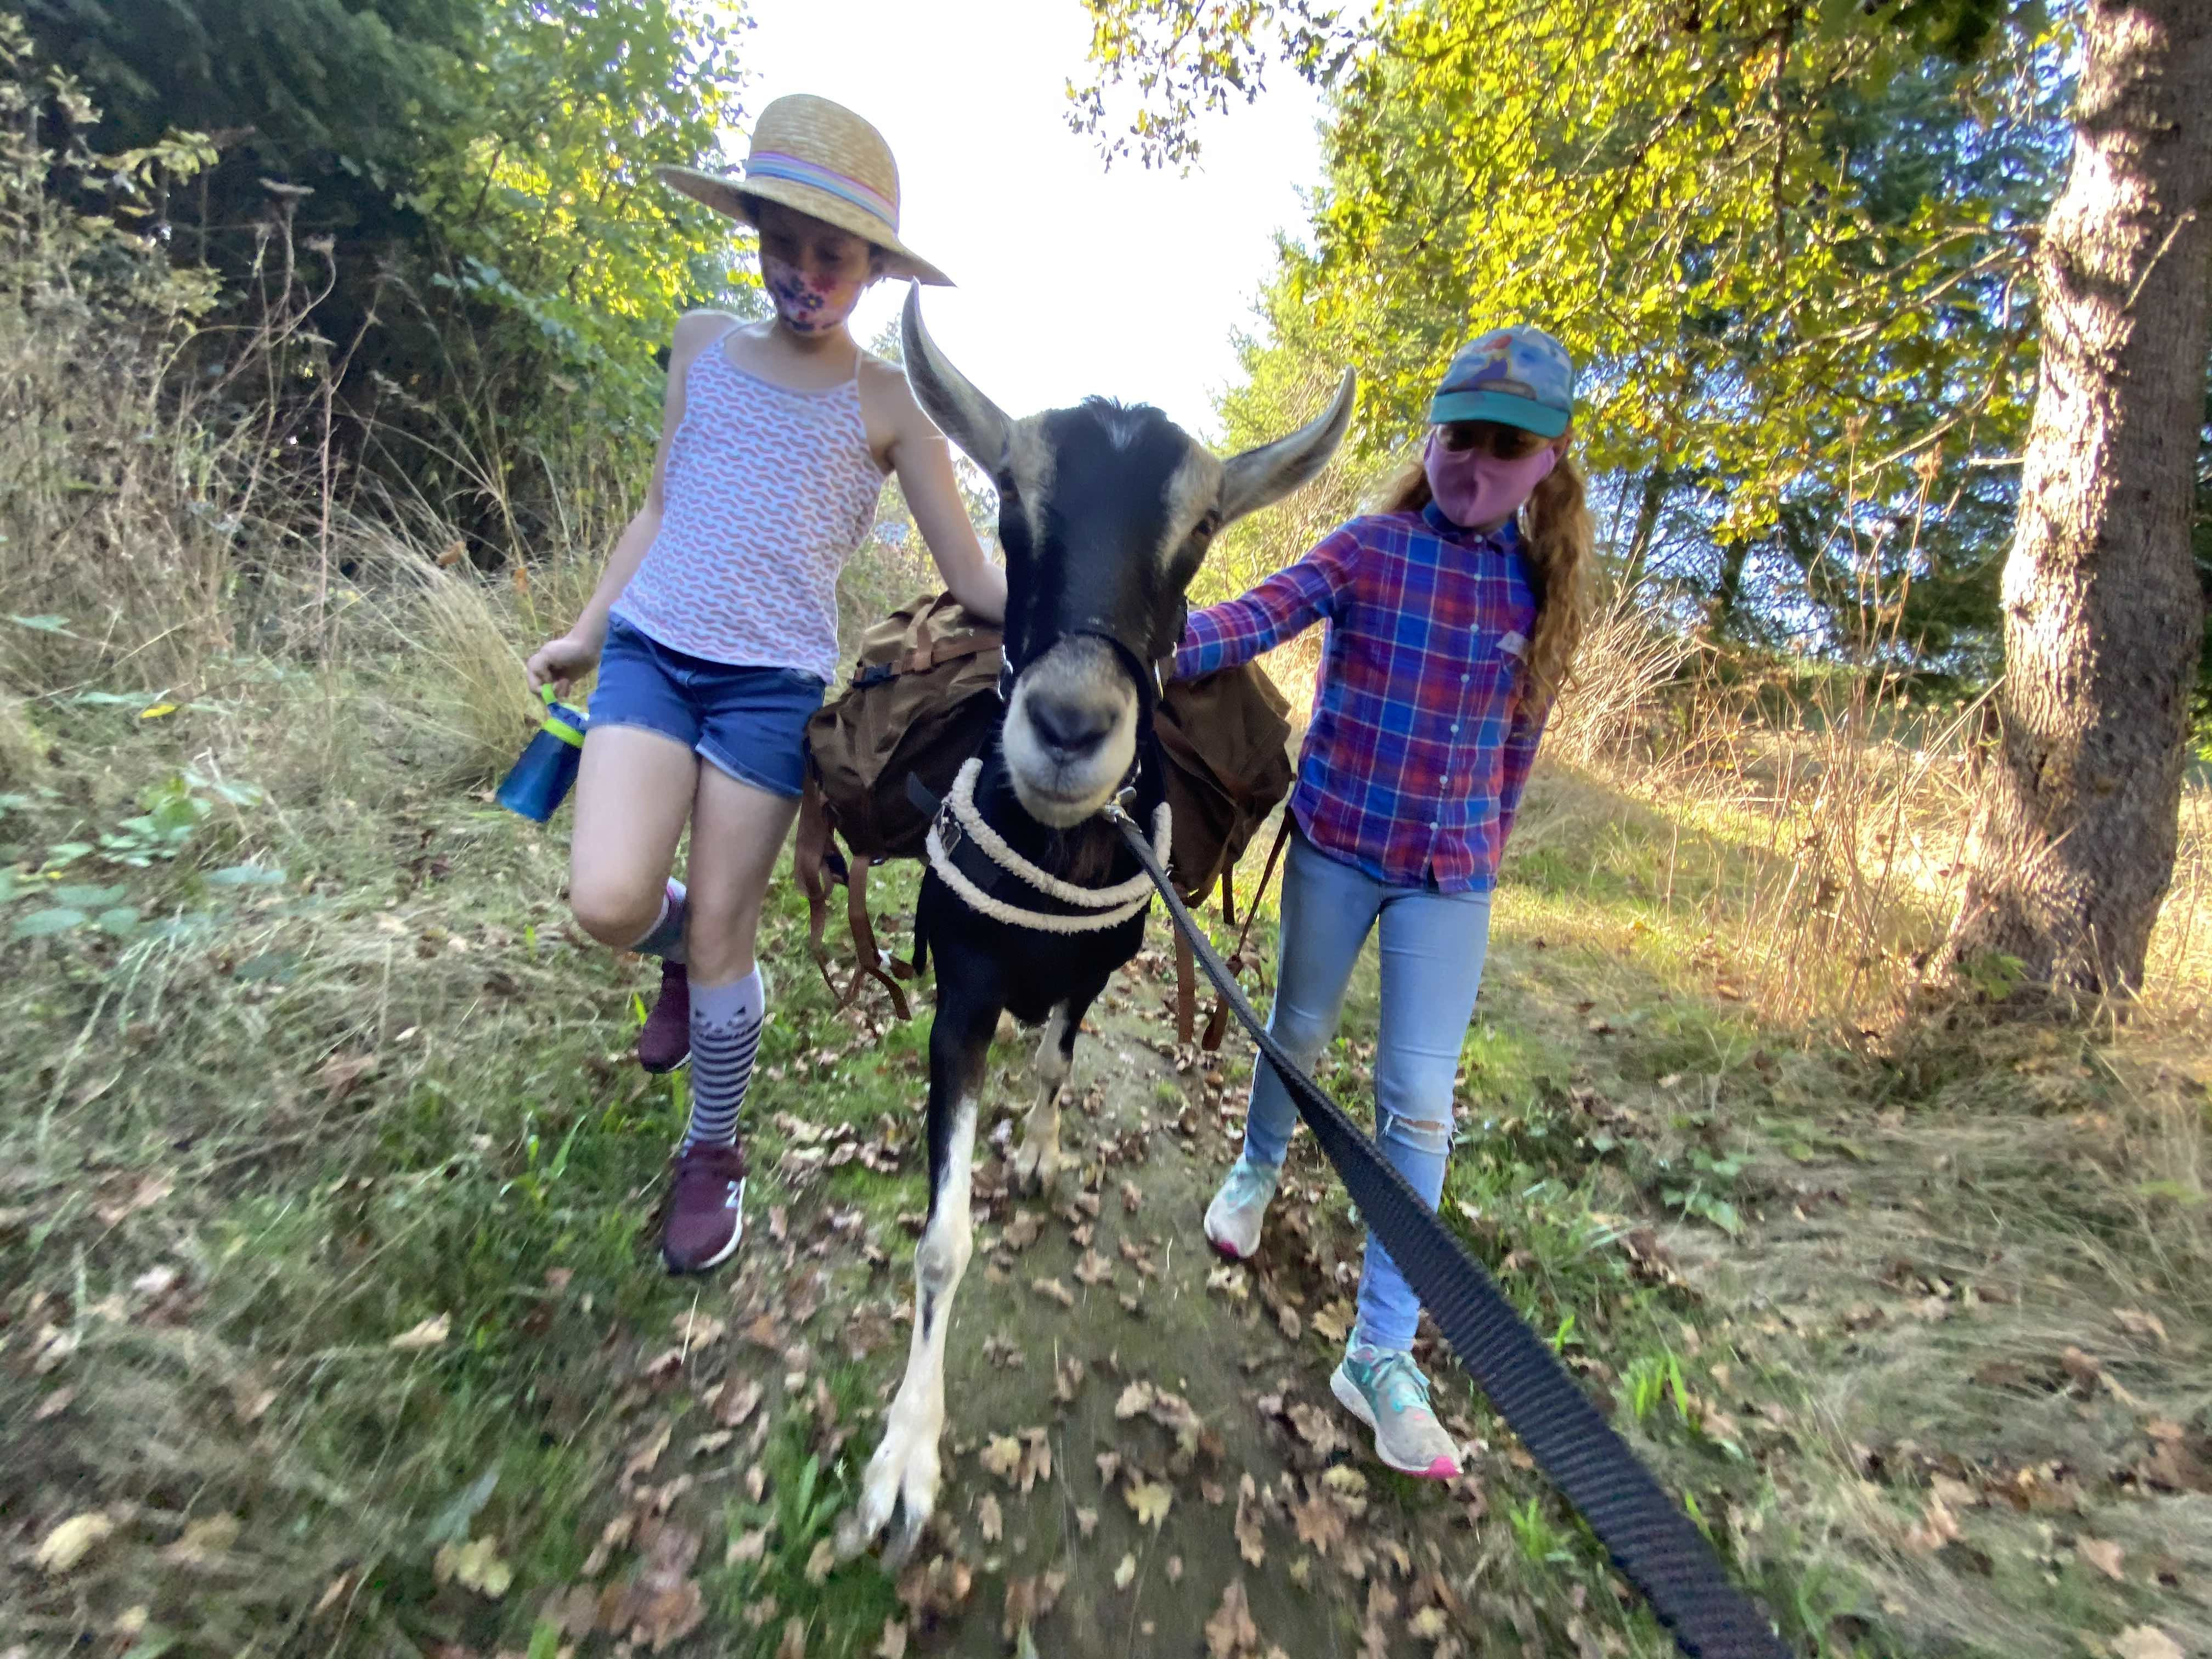 Tour of Fraga Farm & Picnic with Carl the Goat!